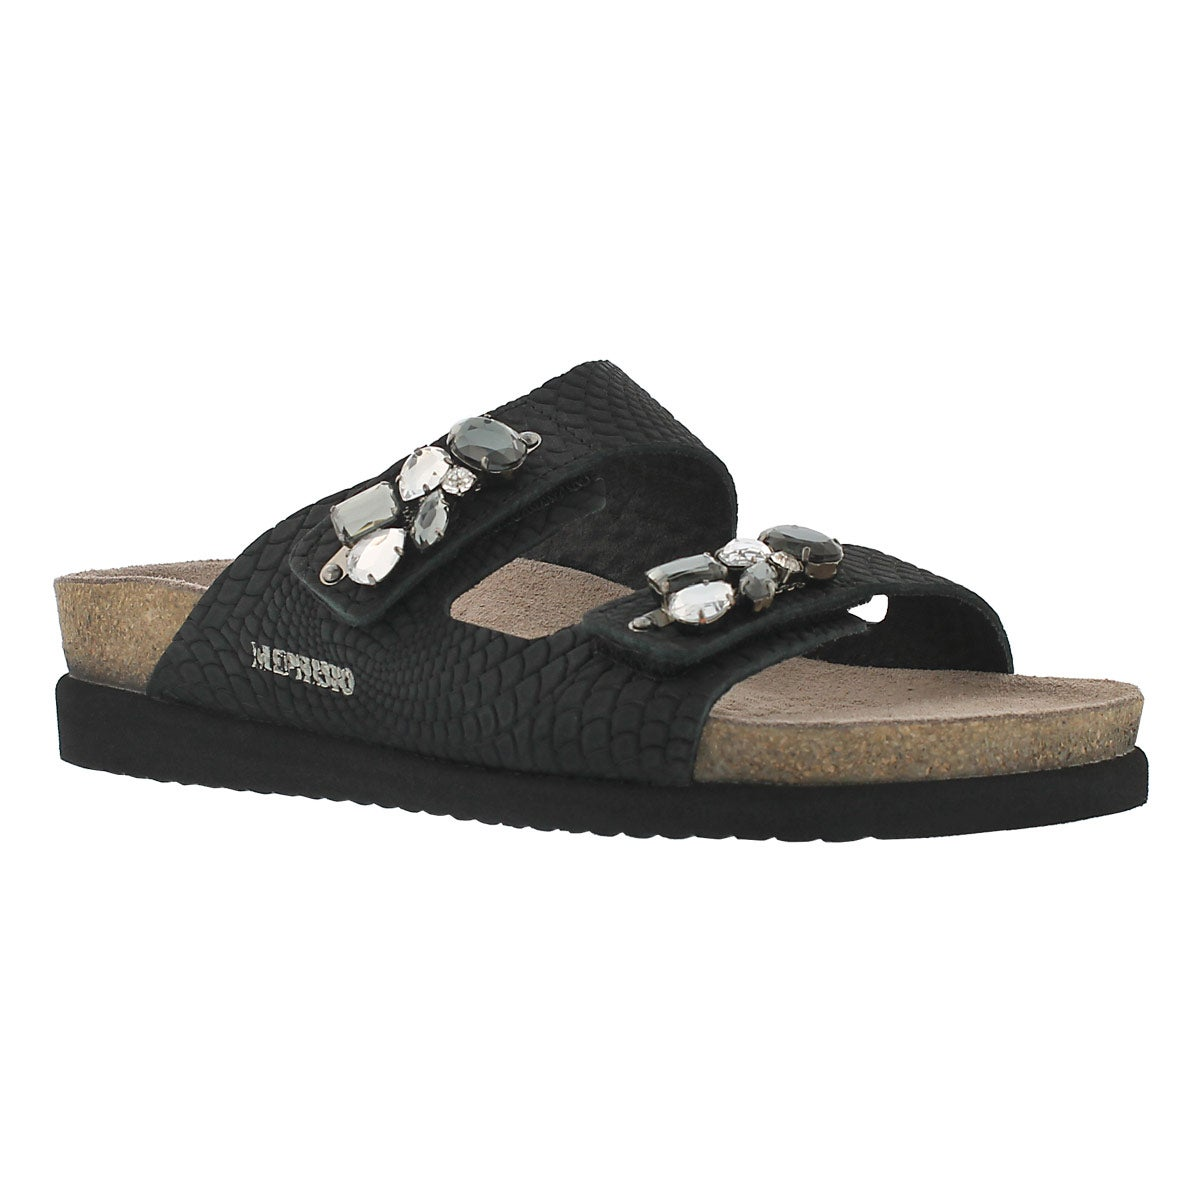 Women's HANA black rio cork footbed sandals